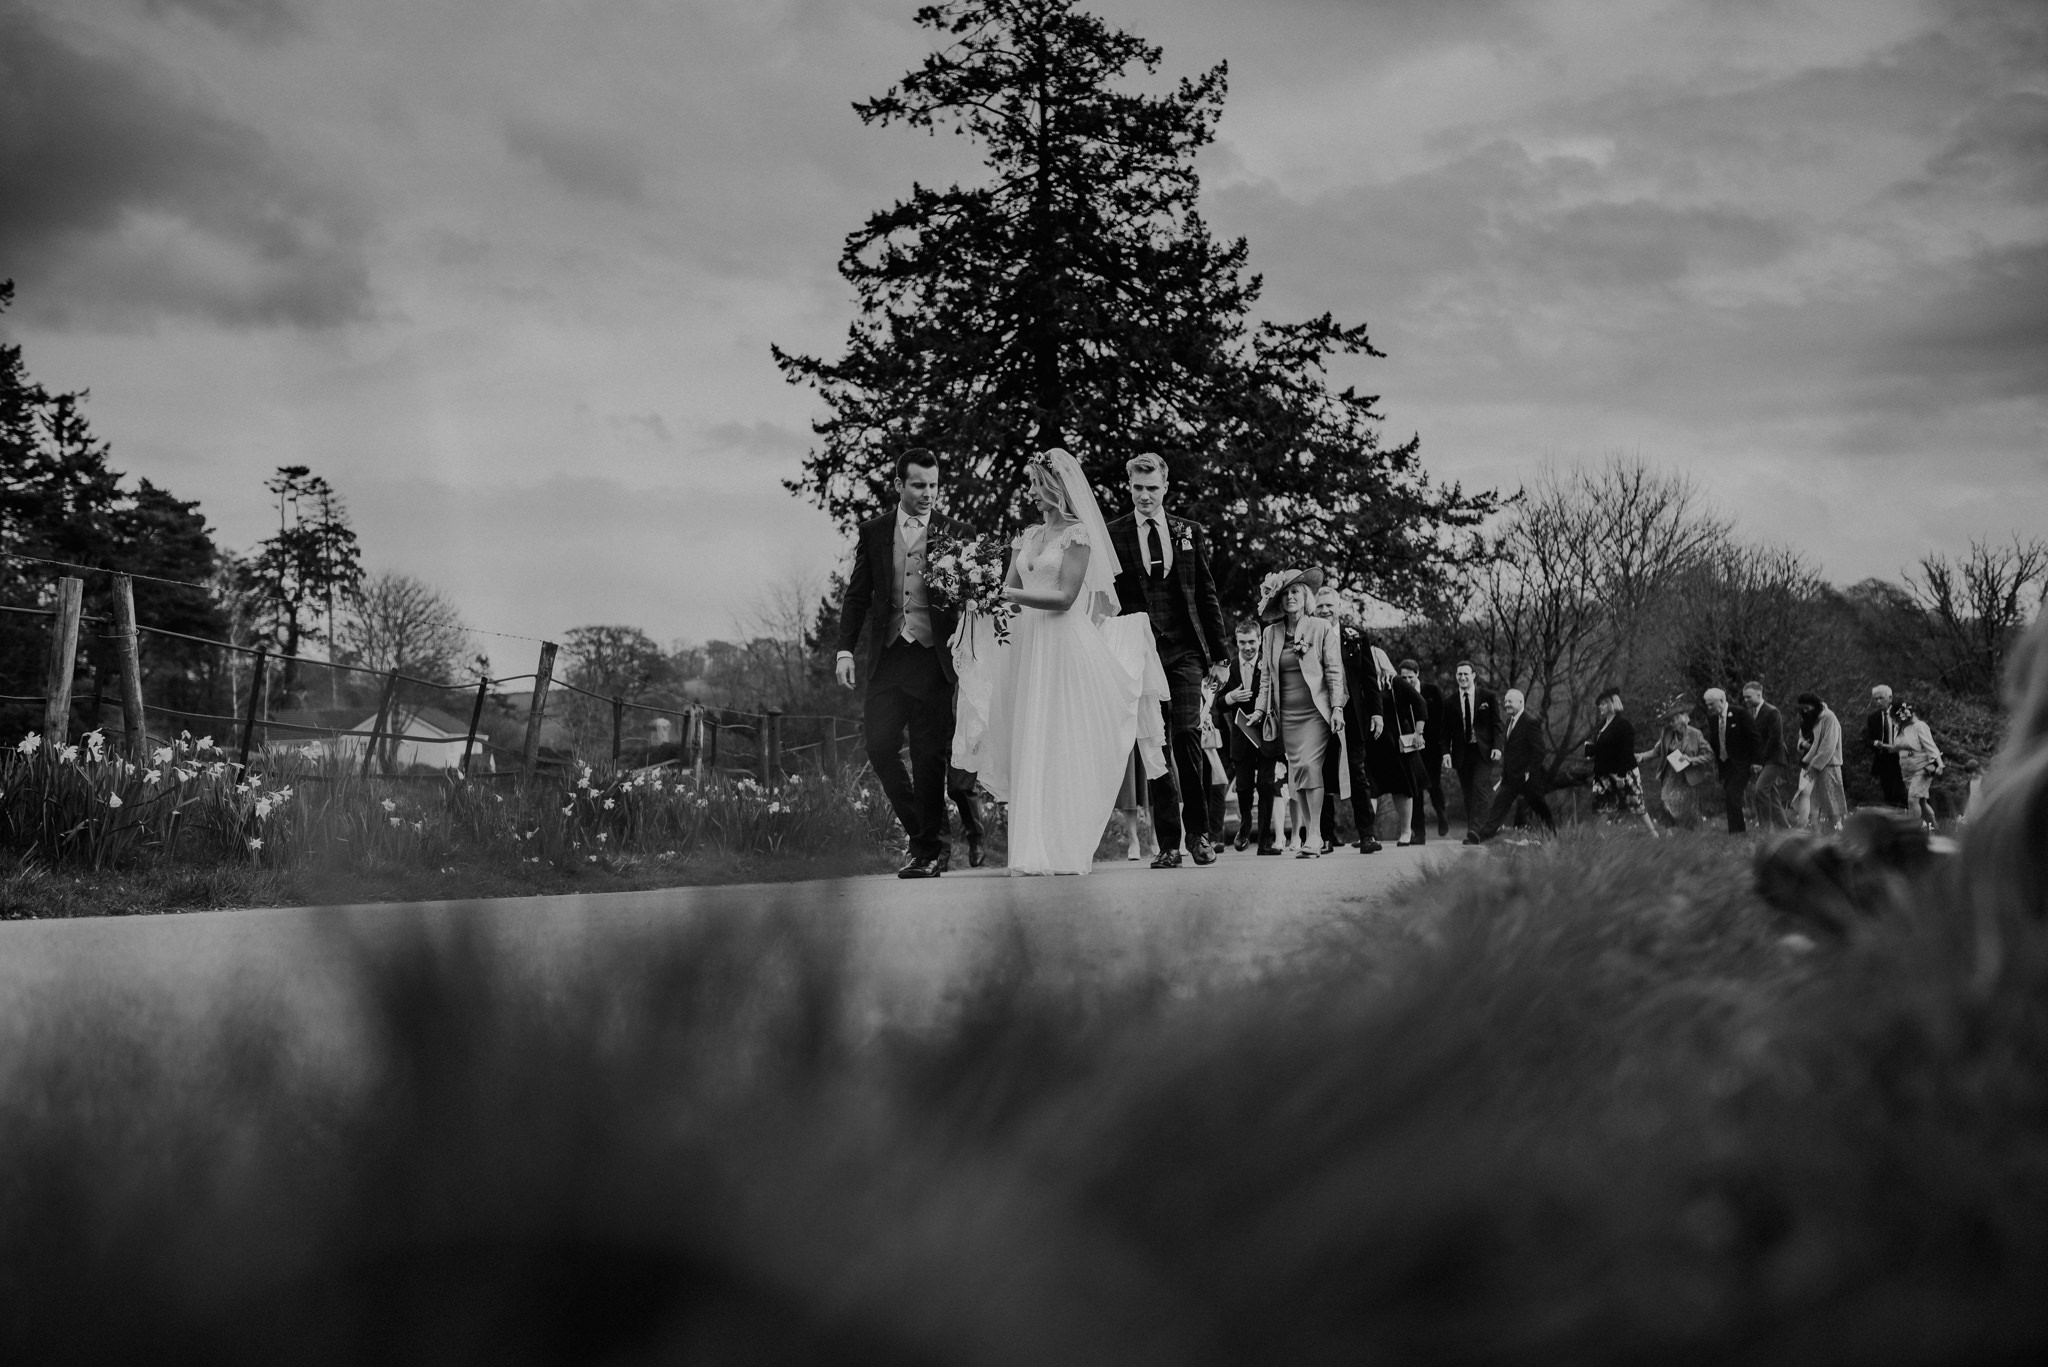 HUNTSHAM-COURT-WEDDING-PHOTOGRAPHER-DEVON-CORNWALL-78.jpg